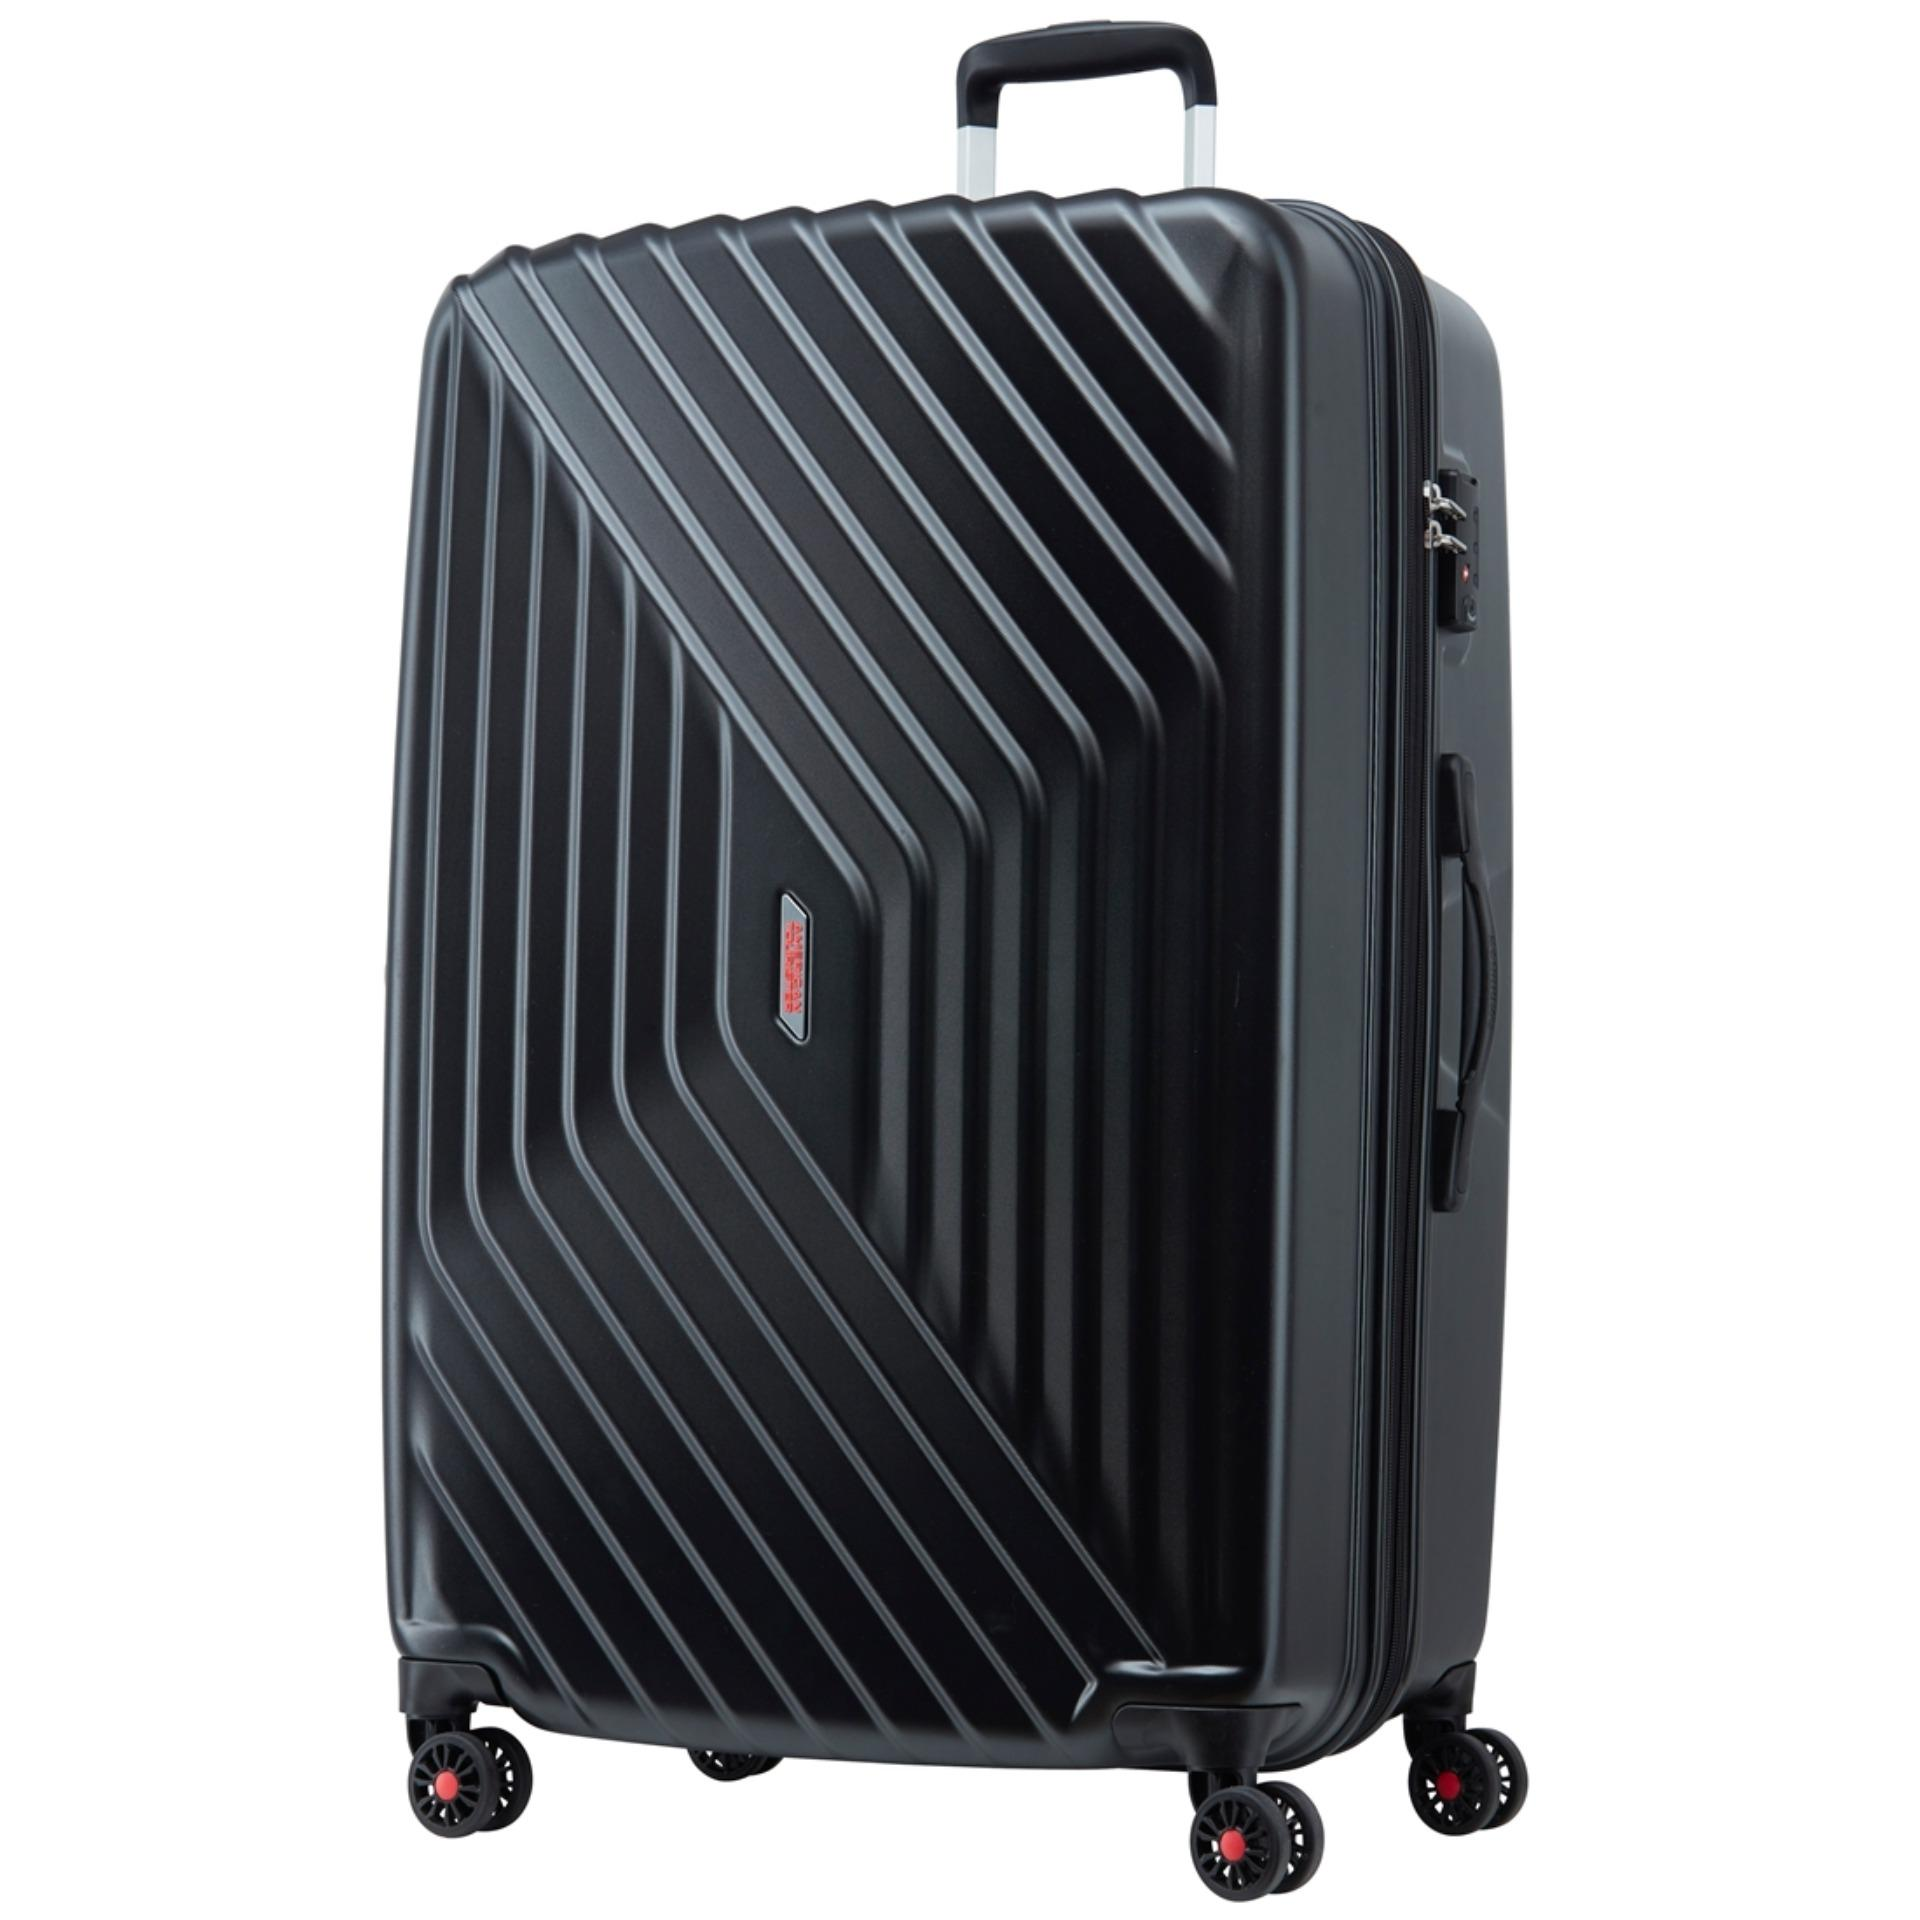 Price American Tourister Air Force Spinner 79 29 Exp Tsa Galaxy Black American Tourister New